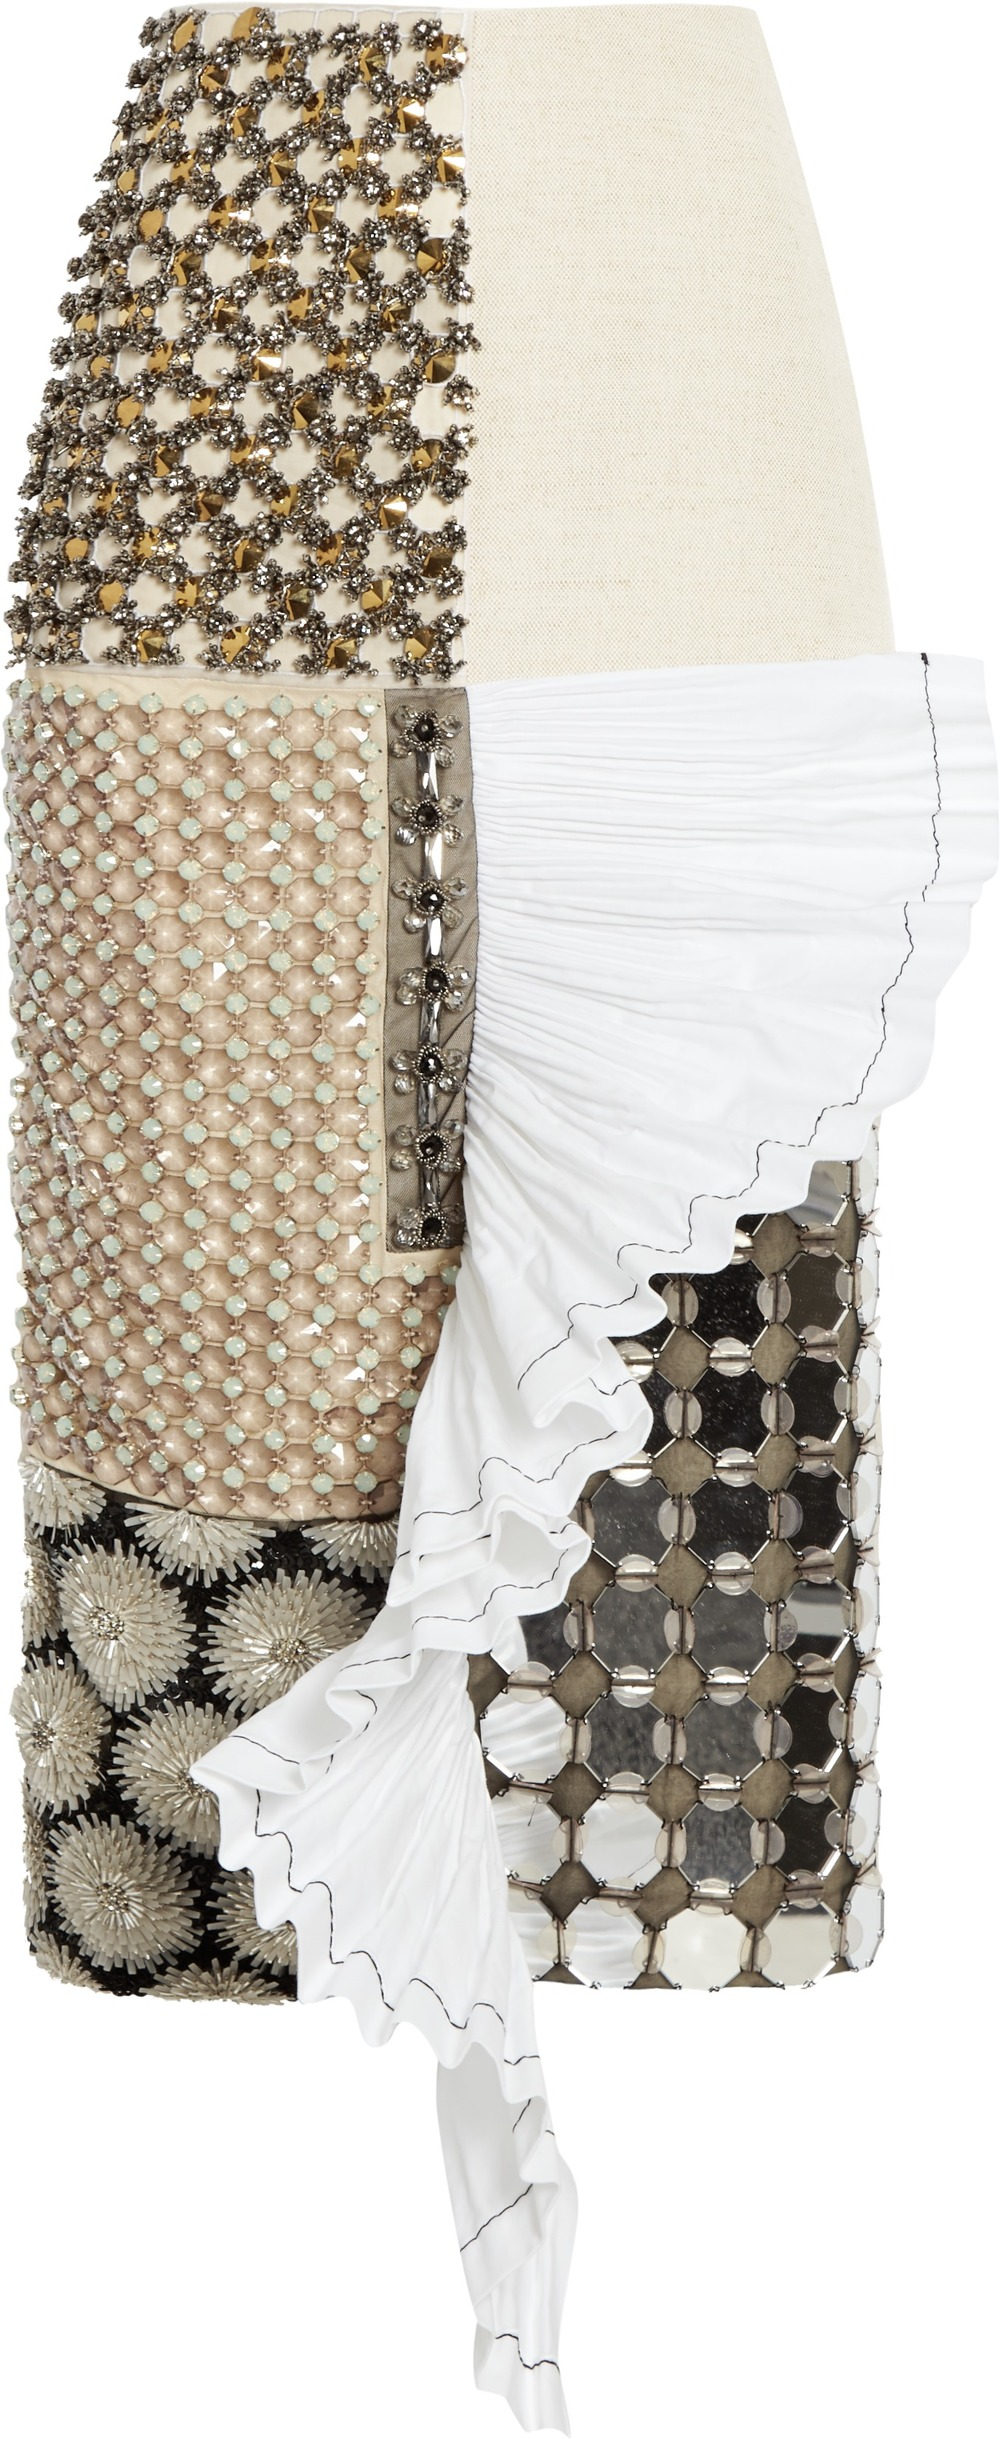 540970_Marni_Paneled embellished canvas midi skirt_THEOUTNET.COM.jpg